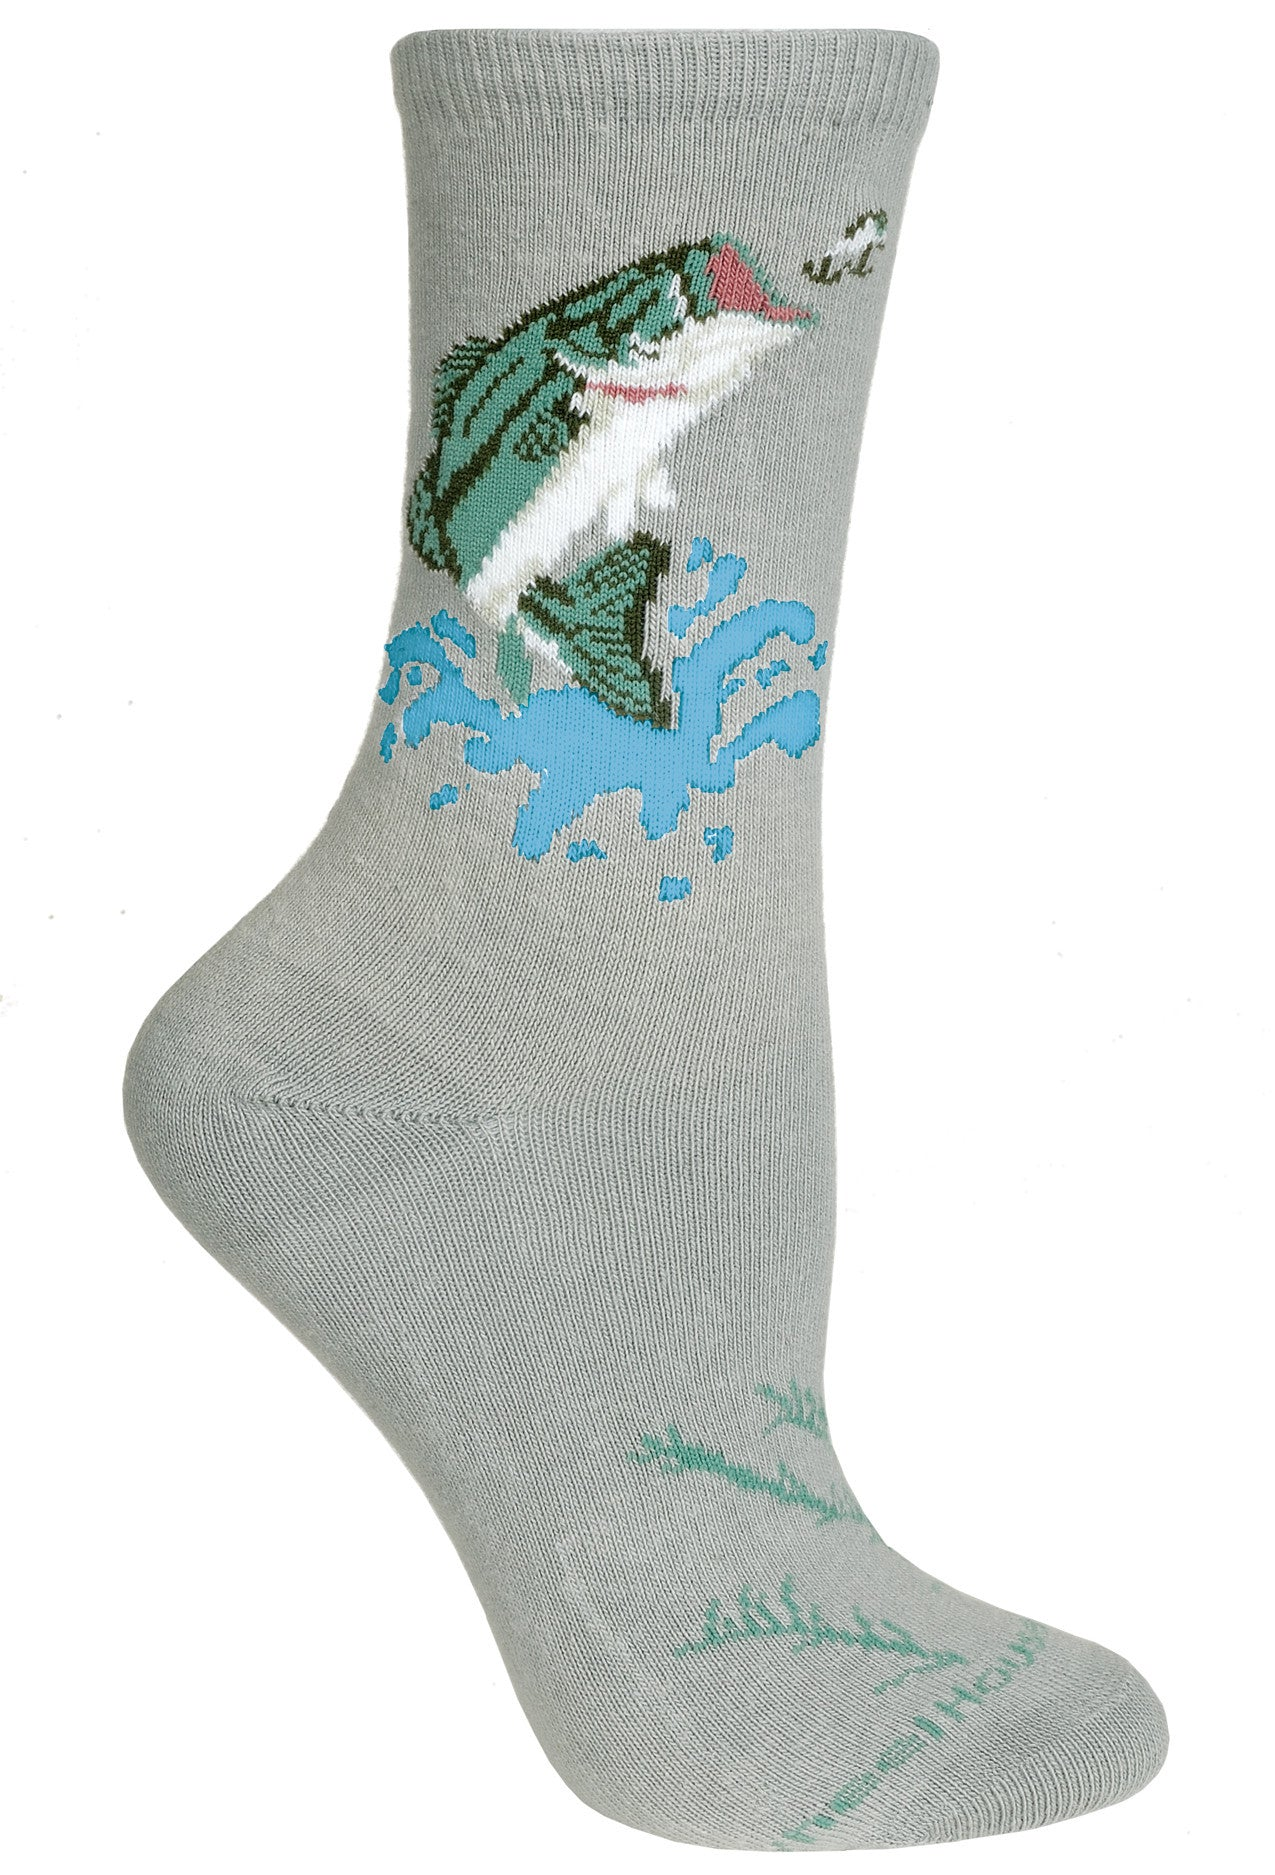 Bass Crew Socks on Gray